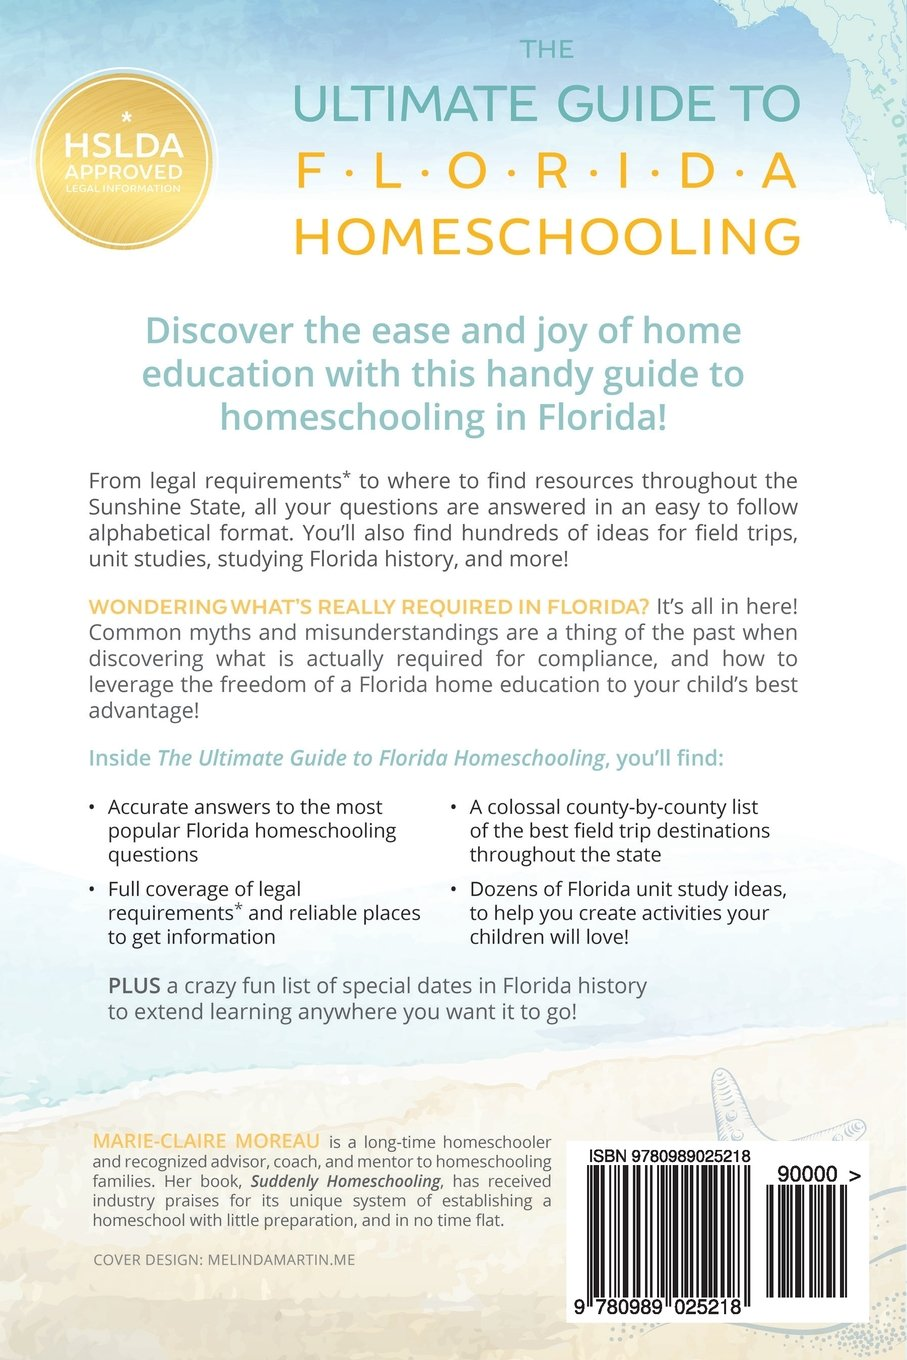 The Ultimate Guide to Florida Homeschooling: Marie-Claire Moreau ...